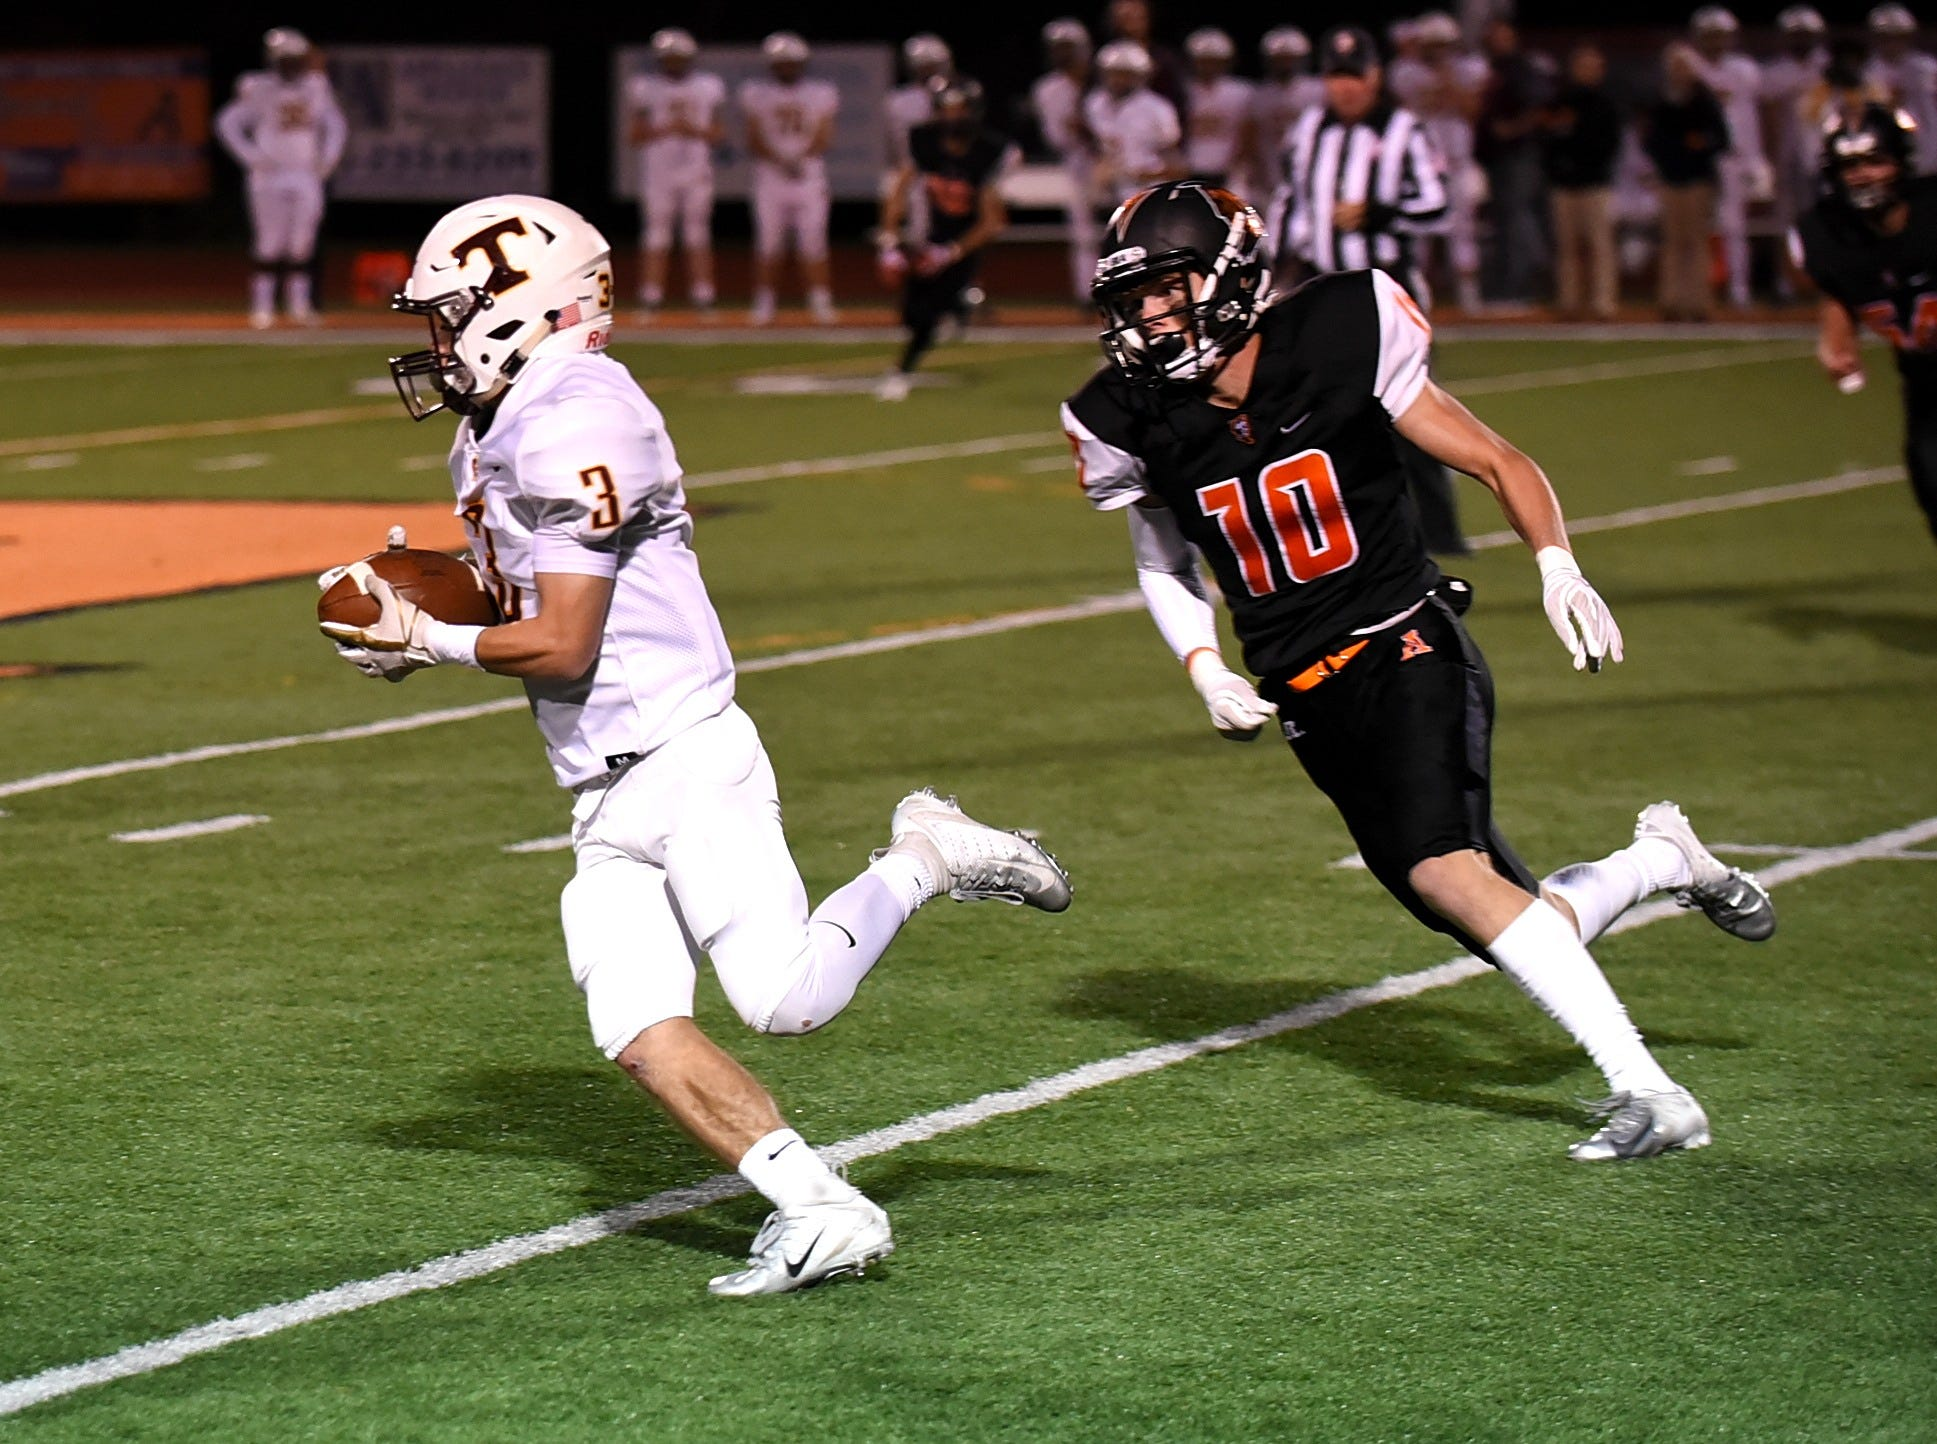 Turpin's Cody Kidd (3) turns the corner past Anderson's Ethan Hamilton (10) for a Spartan's first down, October 12, 2018.